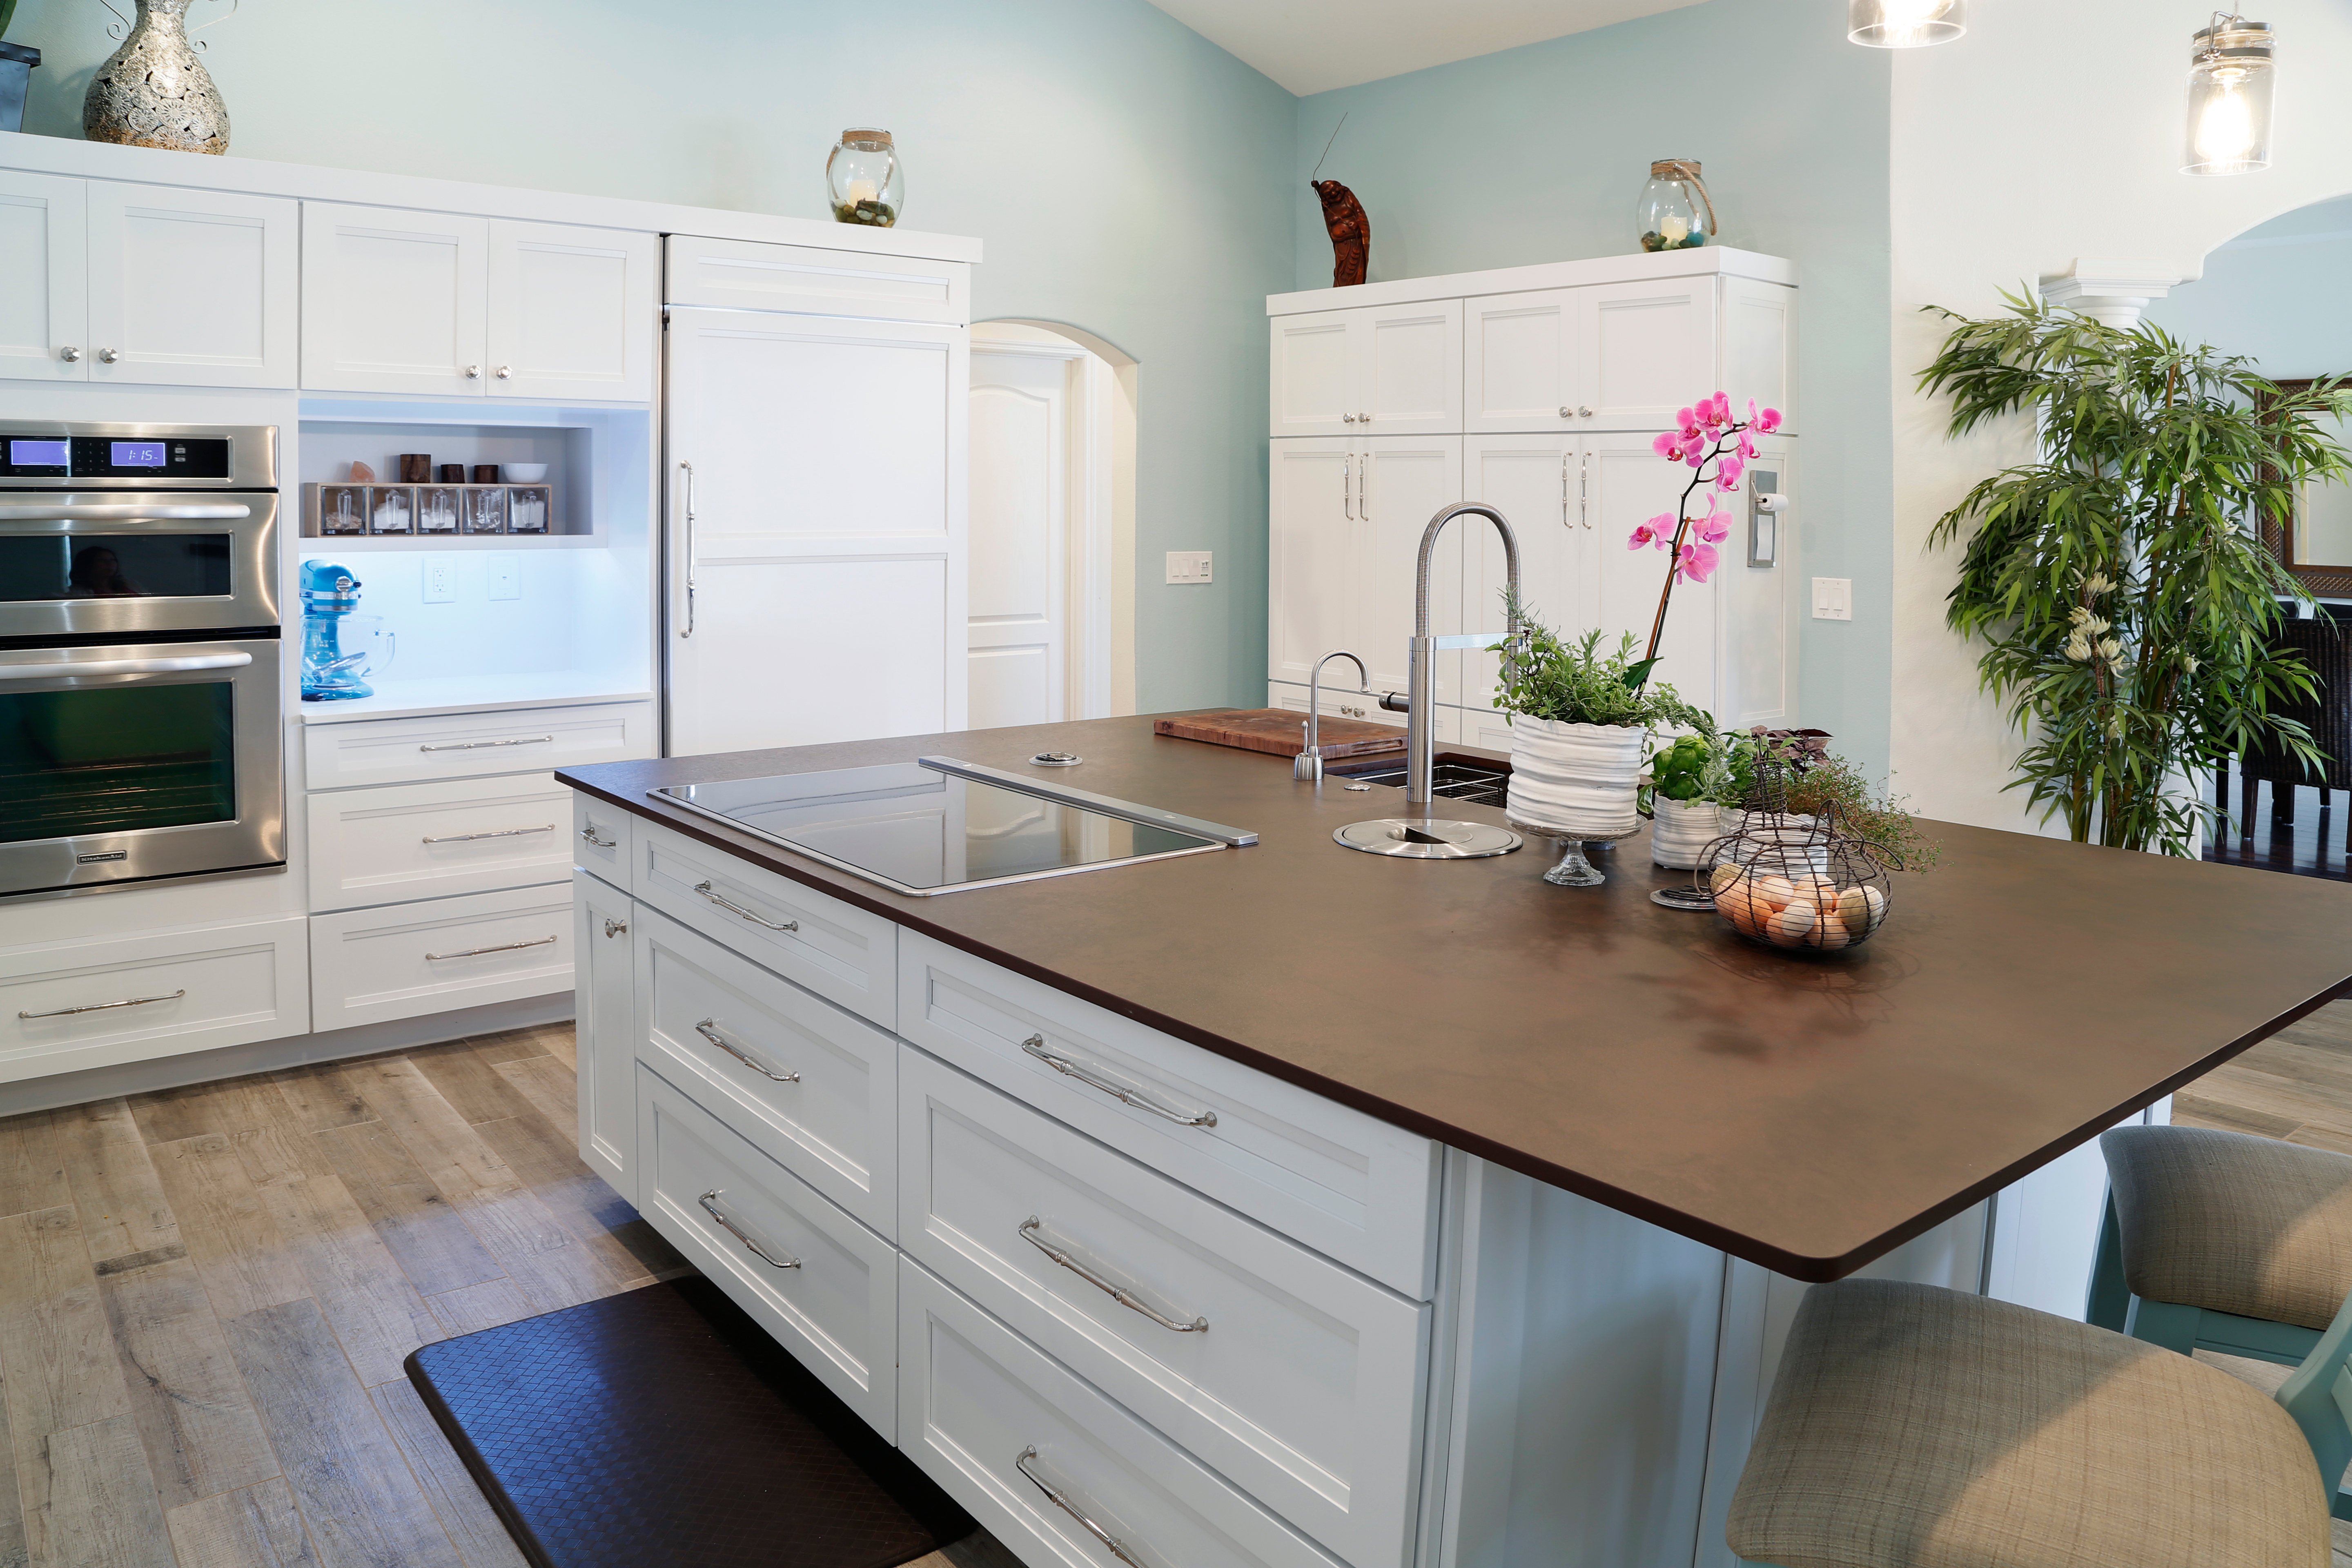 Top Knobs featured in a new Steamy Kitchen design by